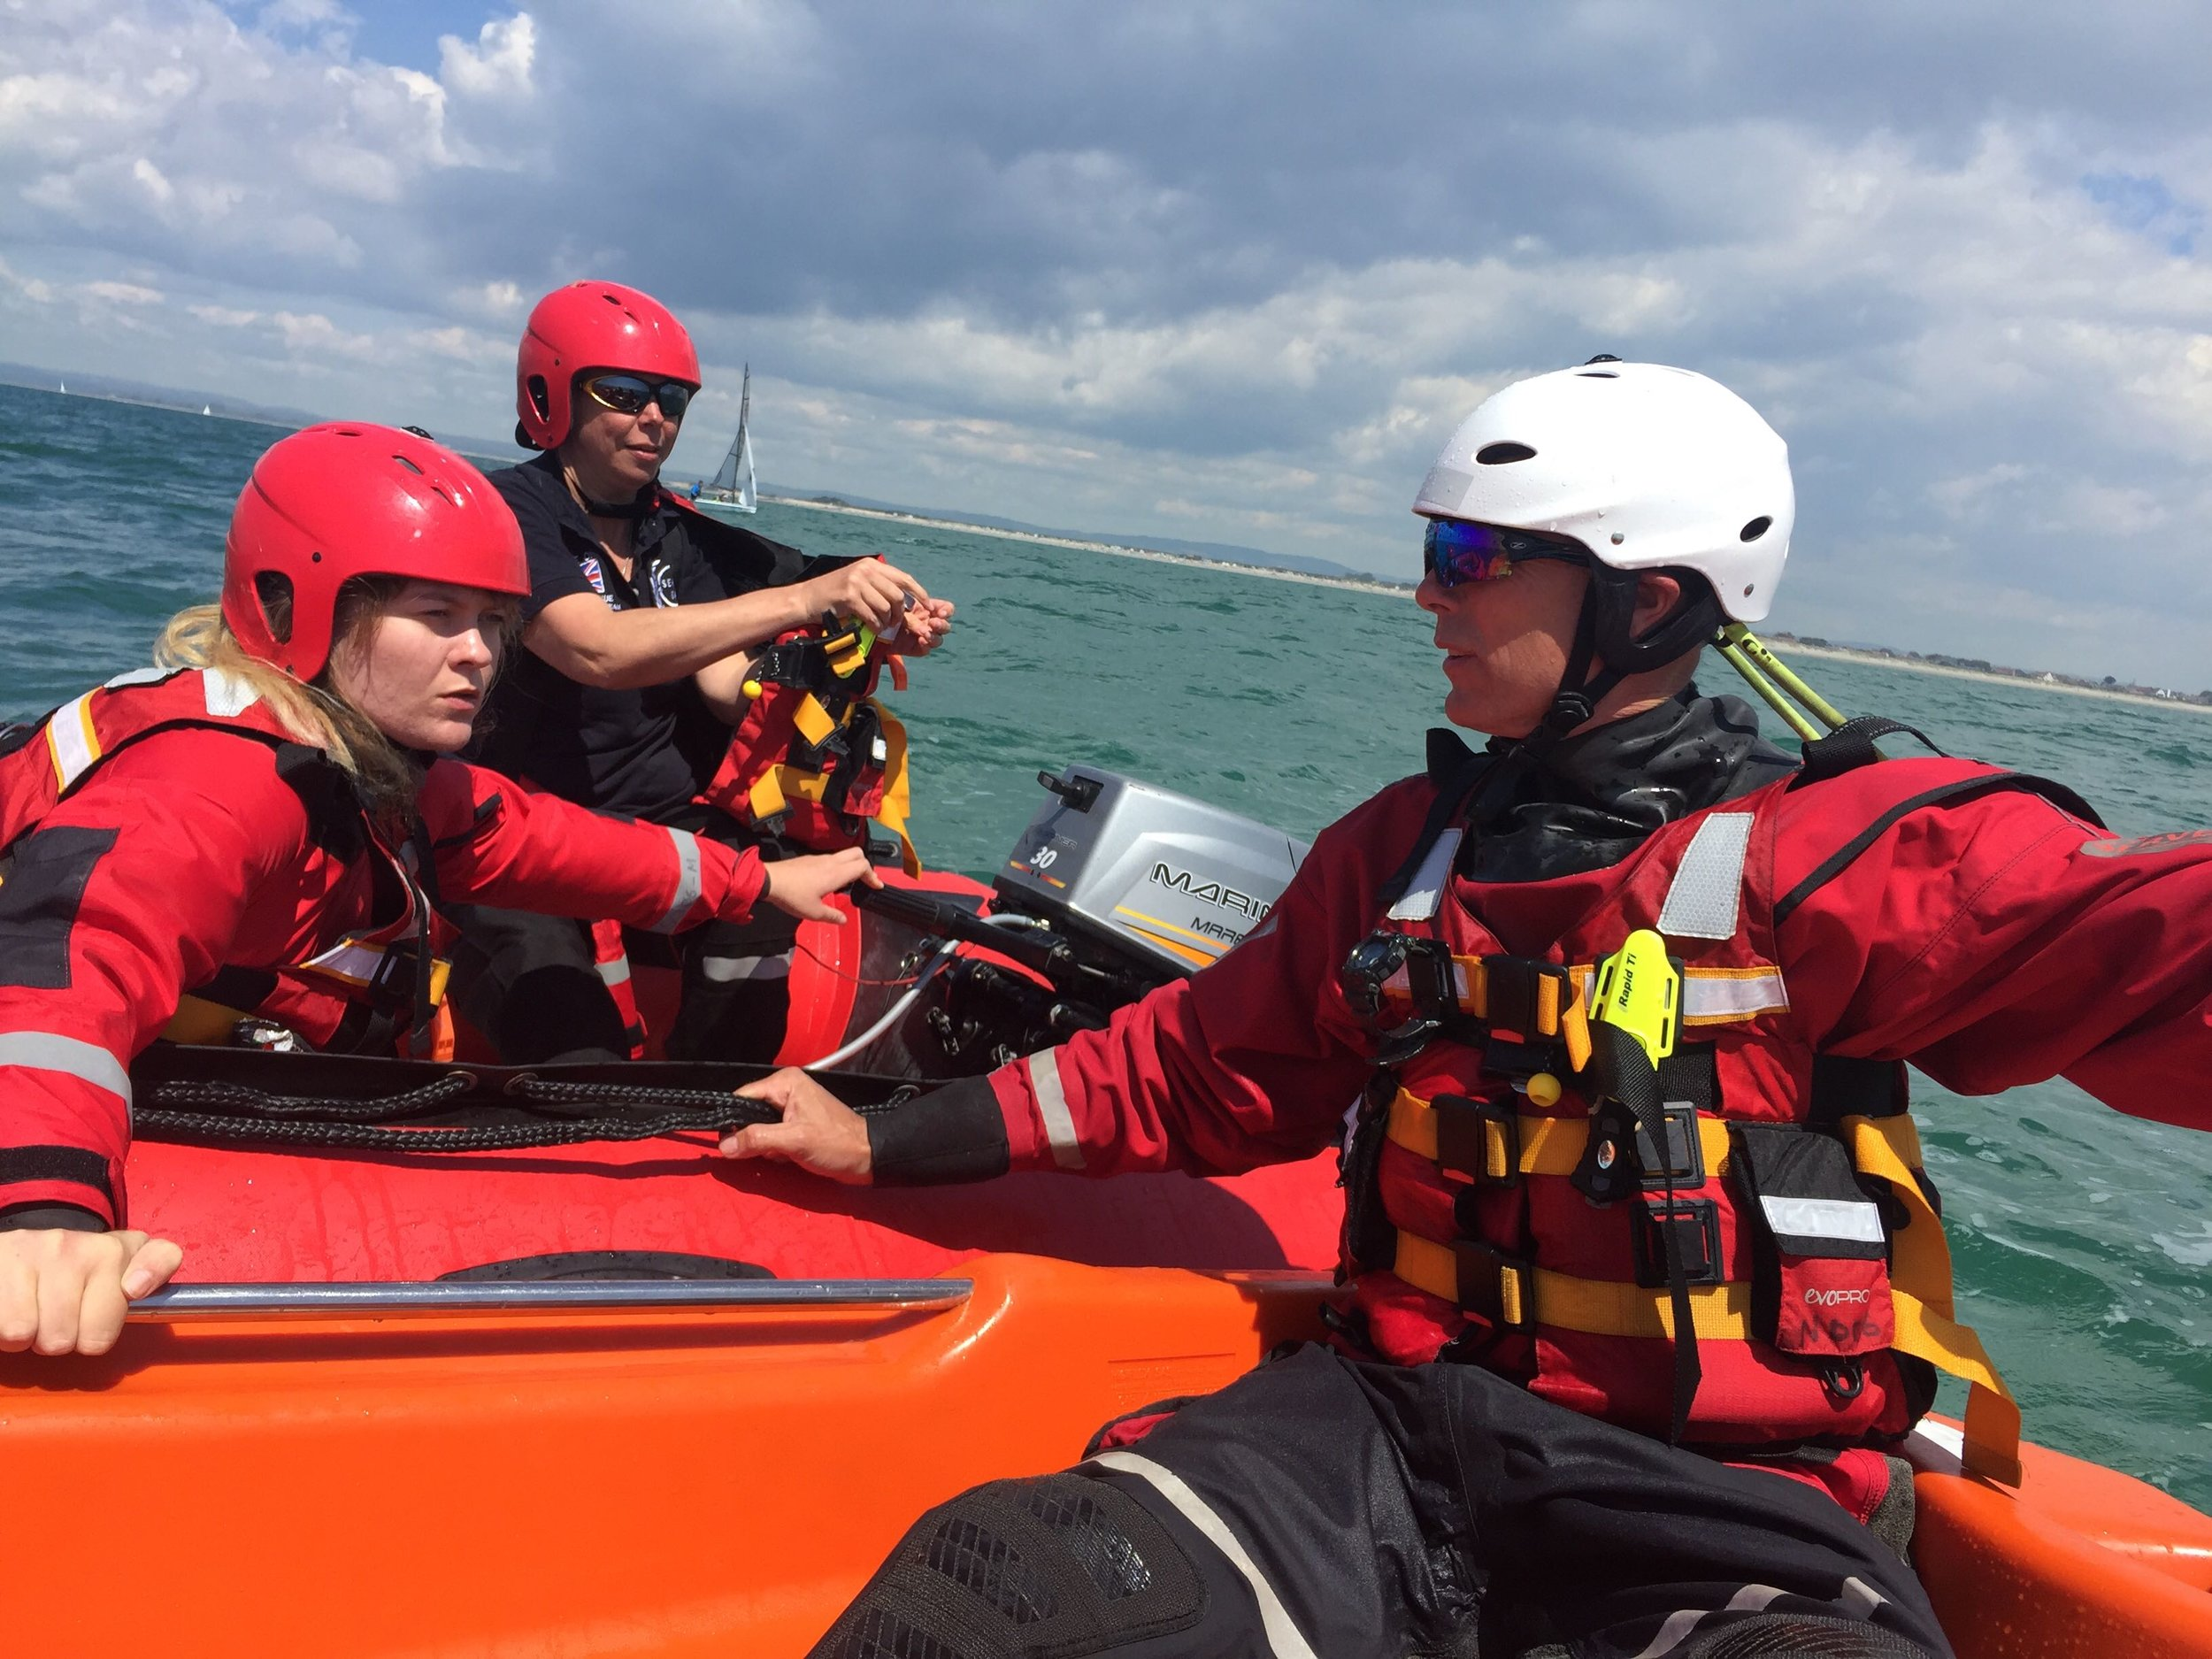 Serve On volunteers provided safety cover for the Hayling Island Sailing Club Whitsun Open Regatta, and tried to stay cool as the weather and the racing hotted up.